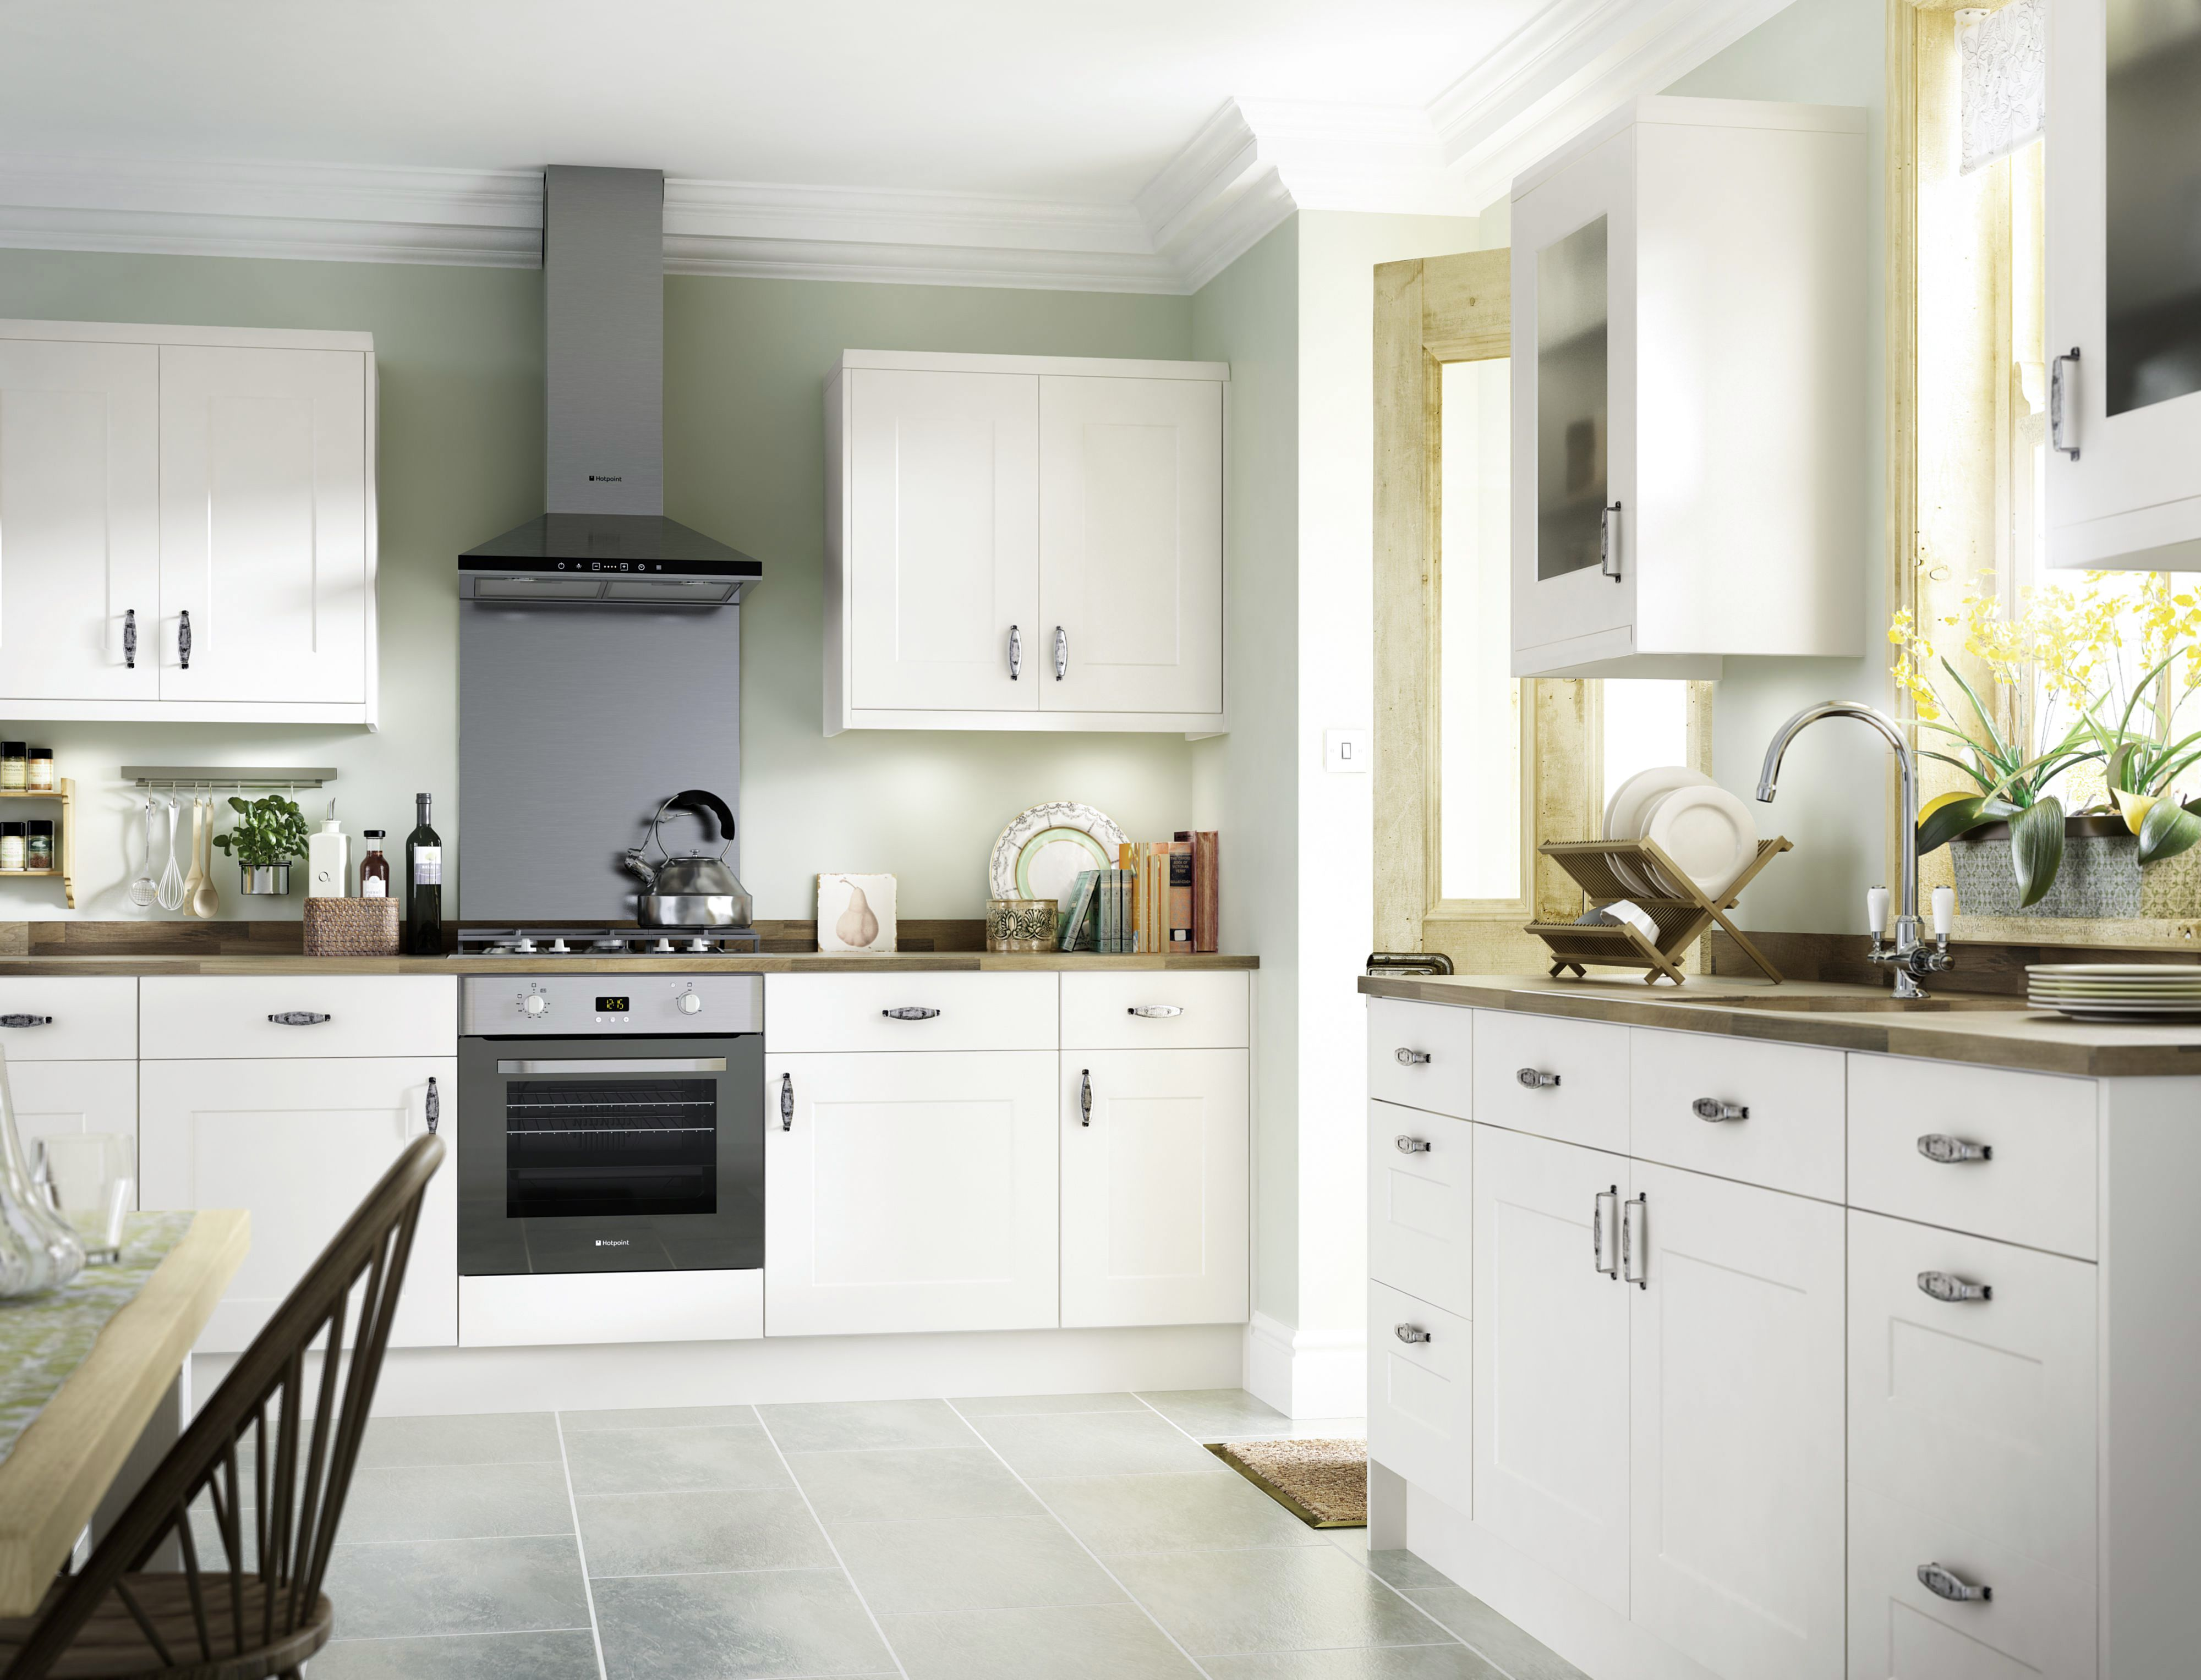 b&q kitchens axor kitchen faucet it stonefield ivory classic style fitted diy at b q